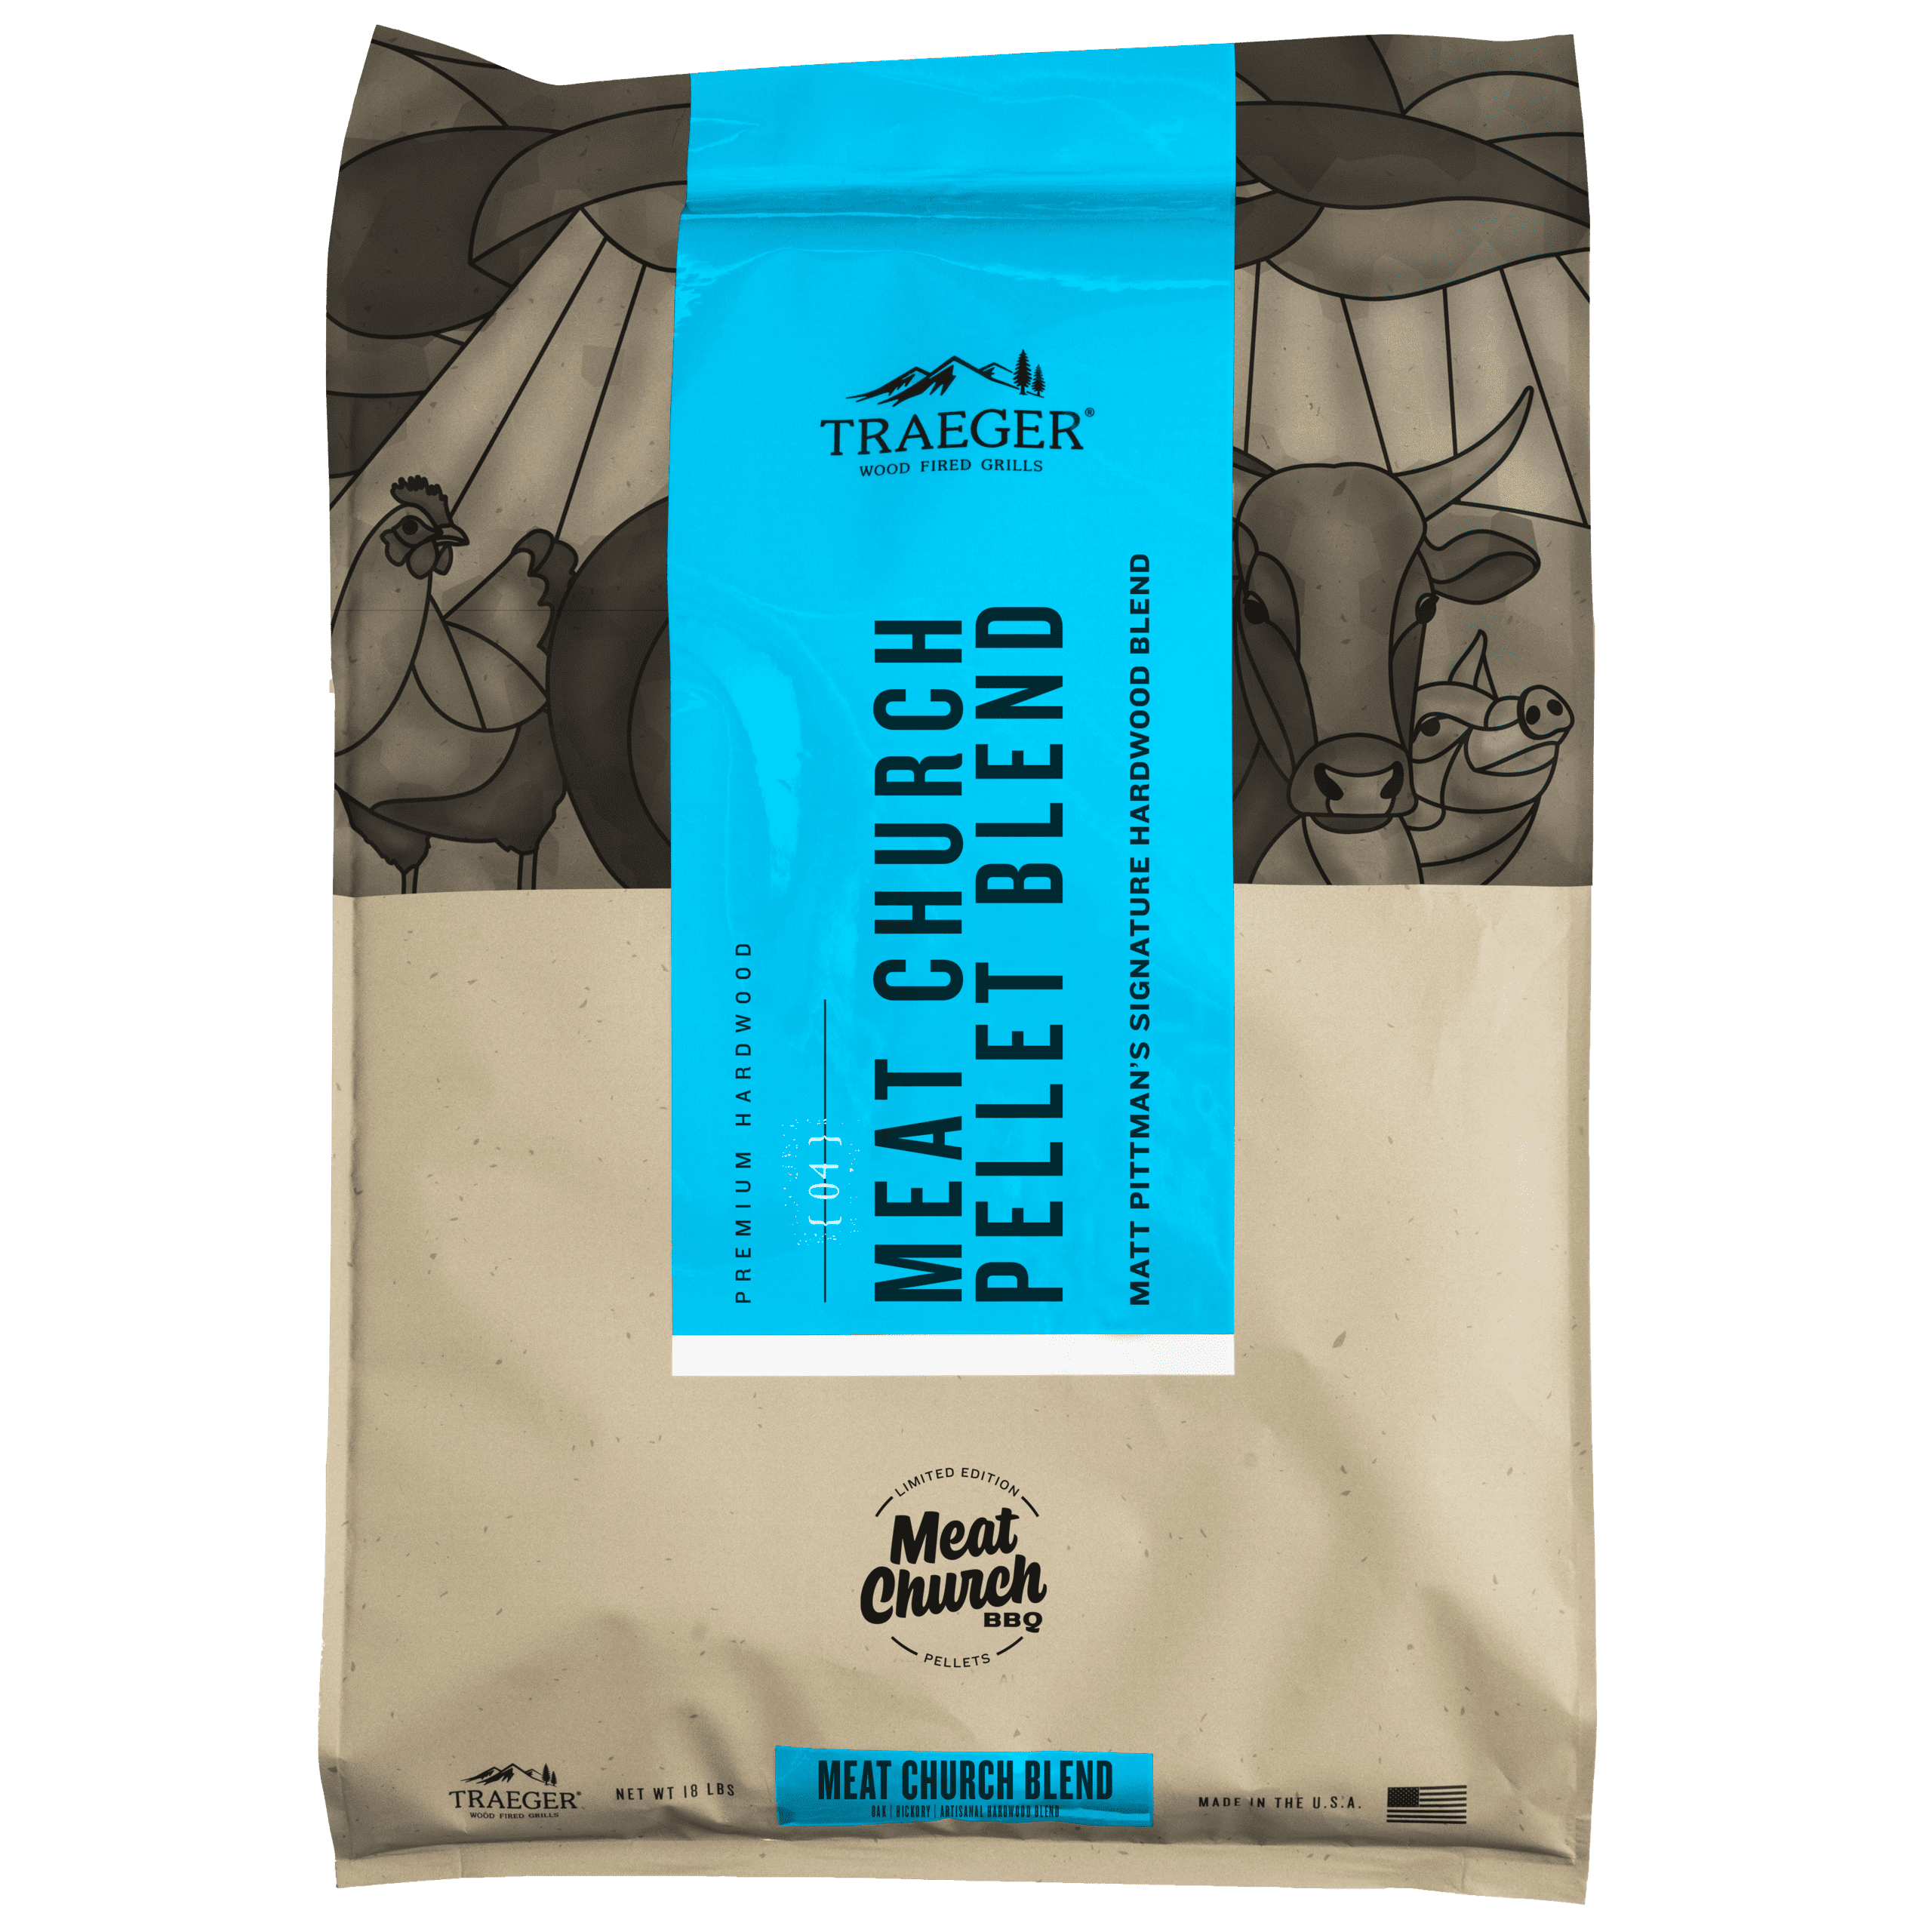 Traeger Limited Edition Meat Church Blend Wood Pellets